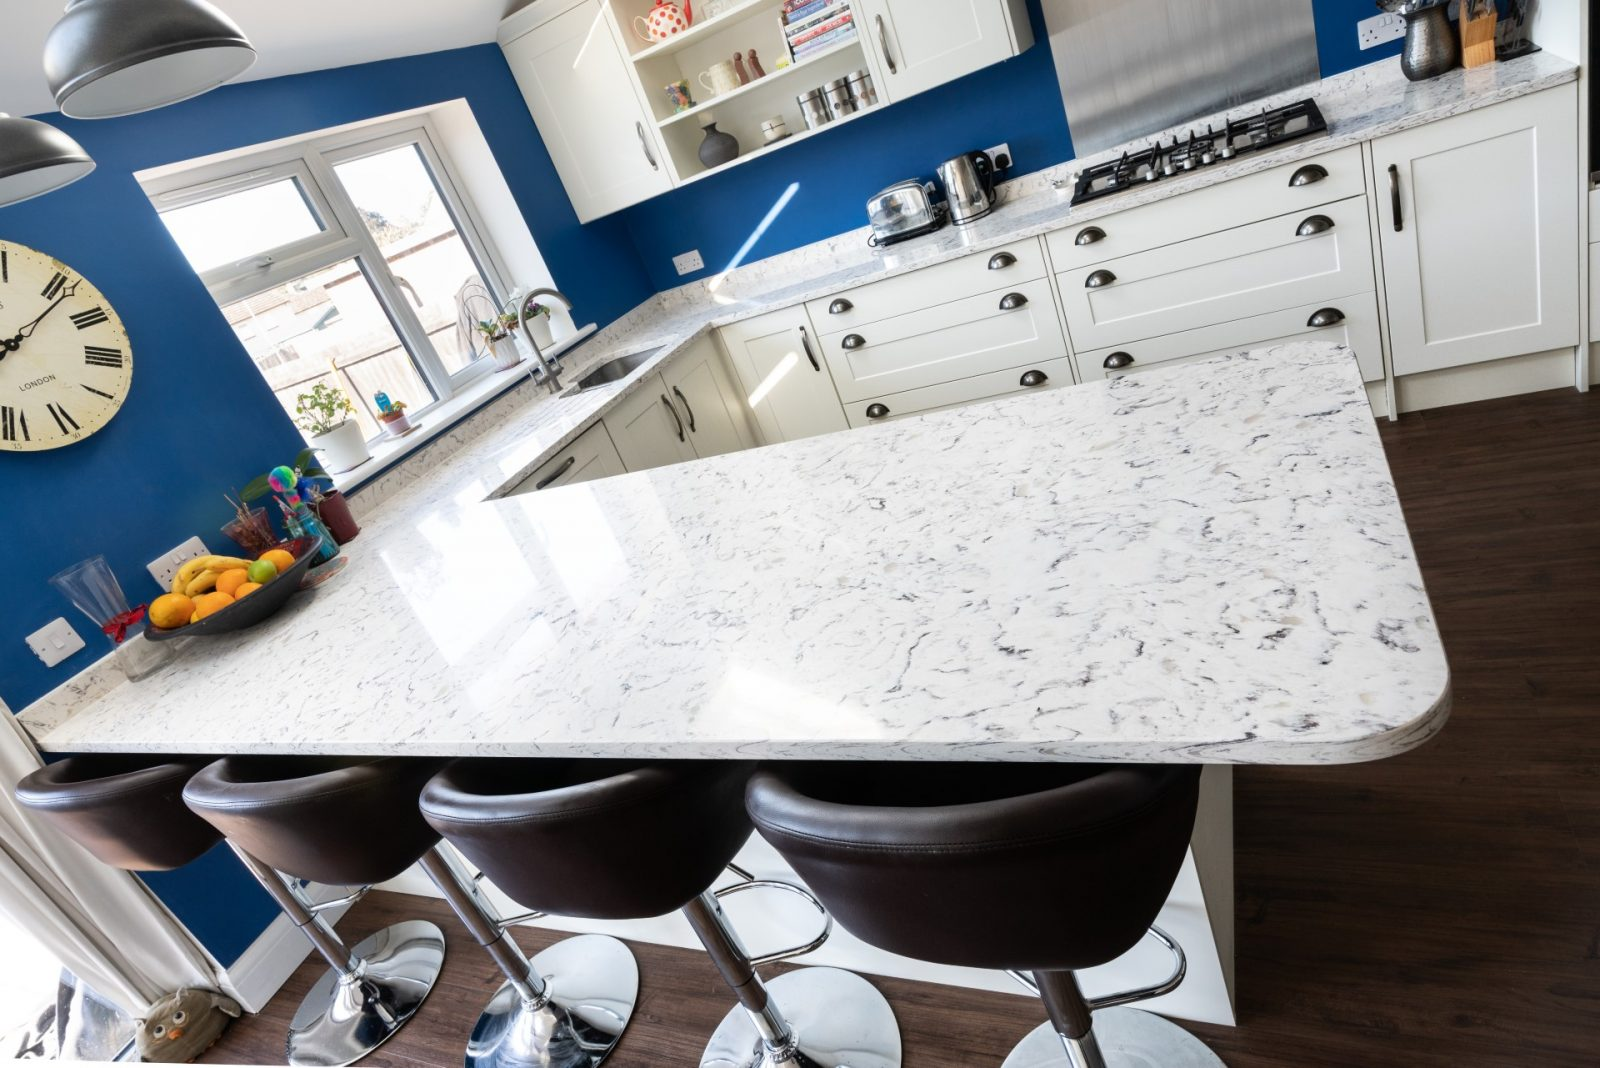 Kitchen of the week… Located in Hitchin, Herts, showcasing the Bianco Foresta